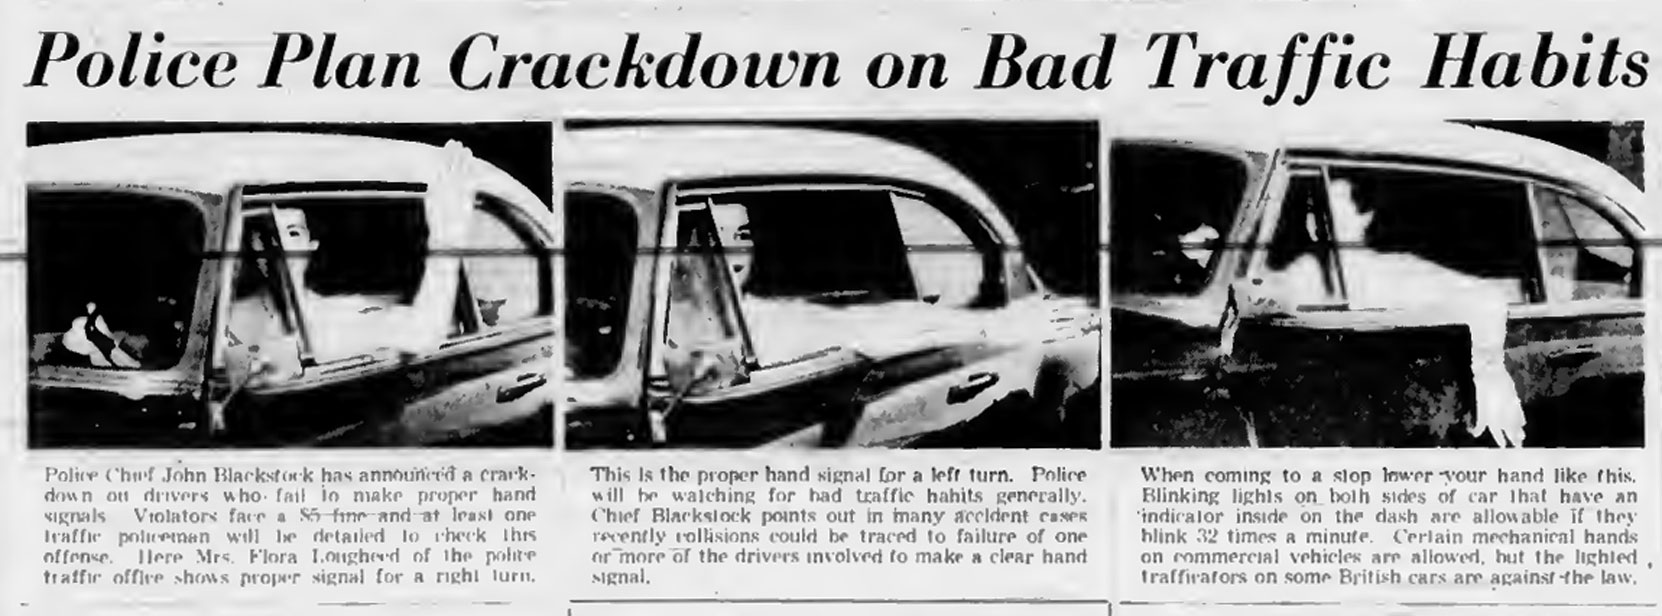 Victoria newspaper story about a planned police crackdown on drivers not using hand signals, 1954.